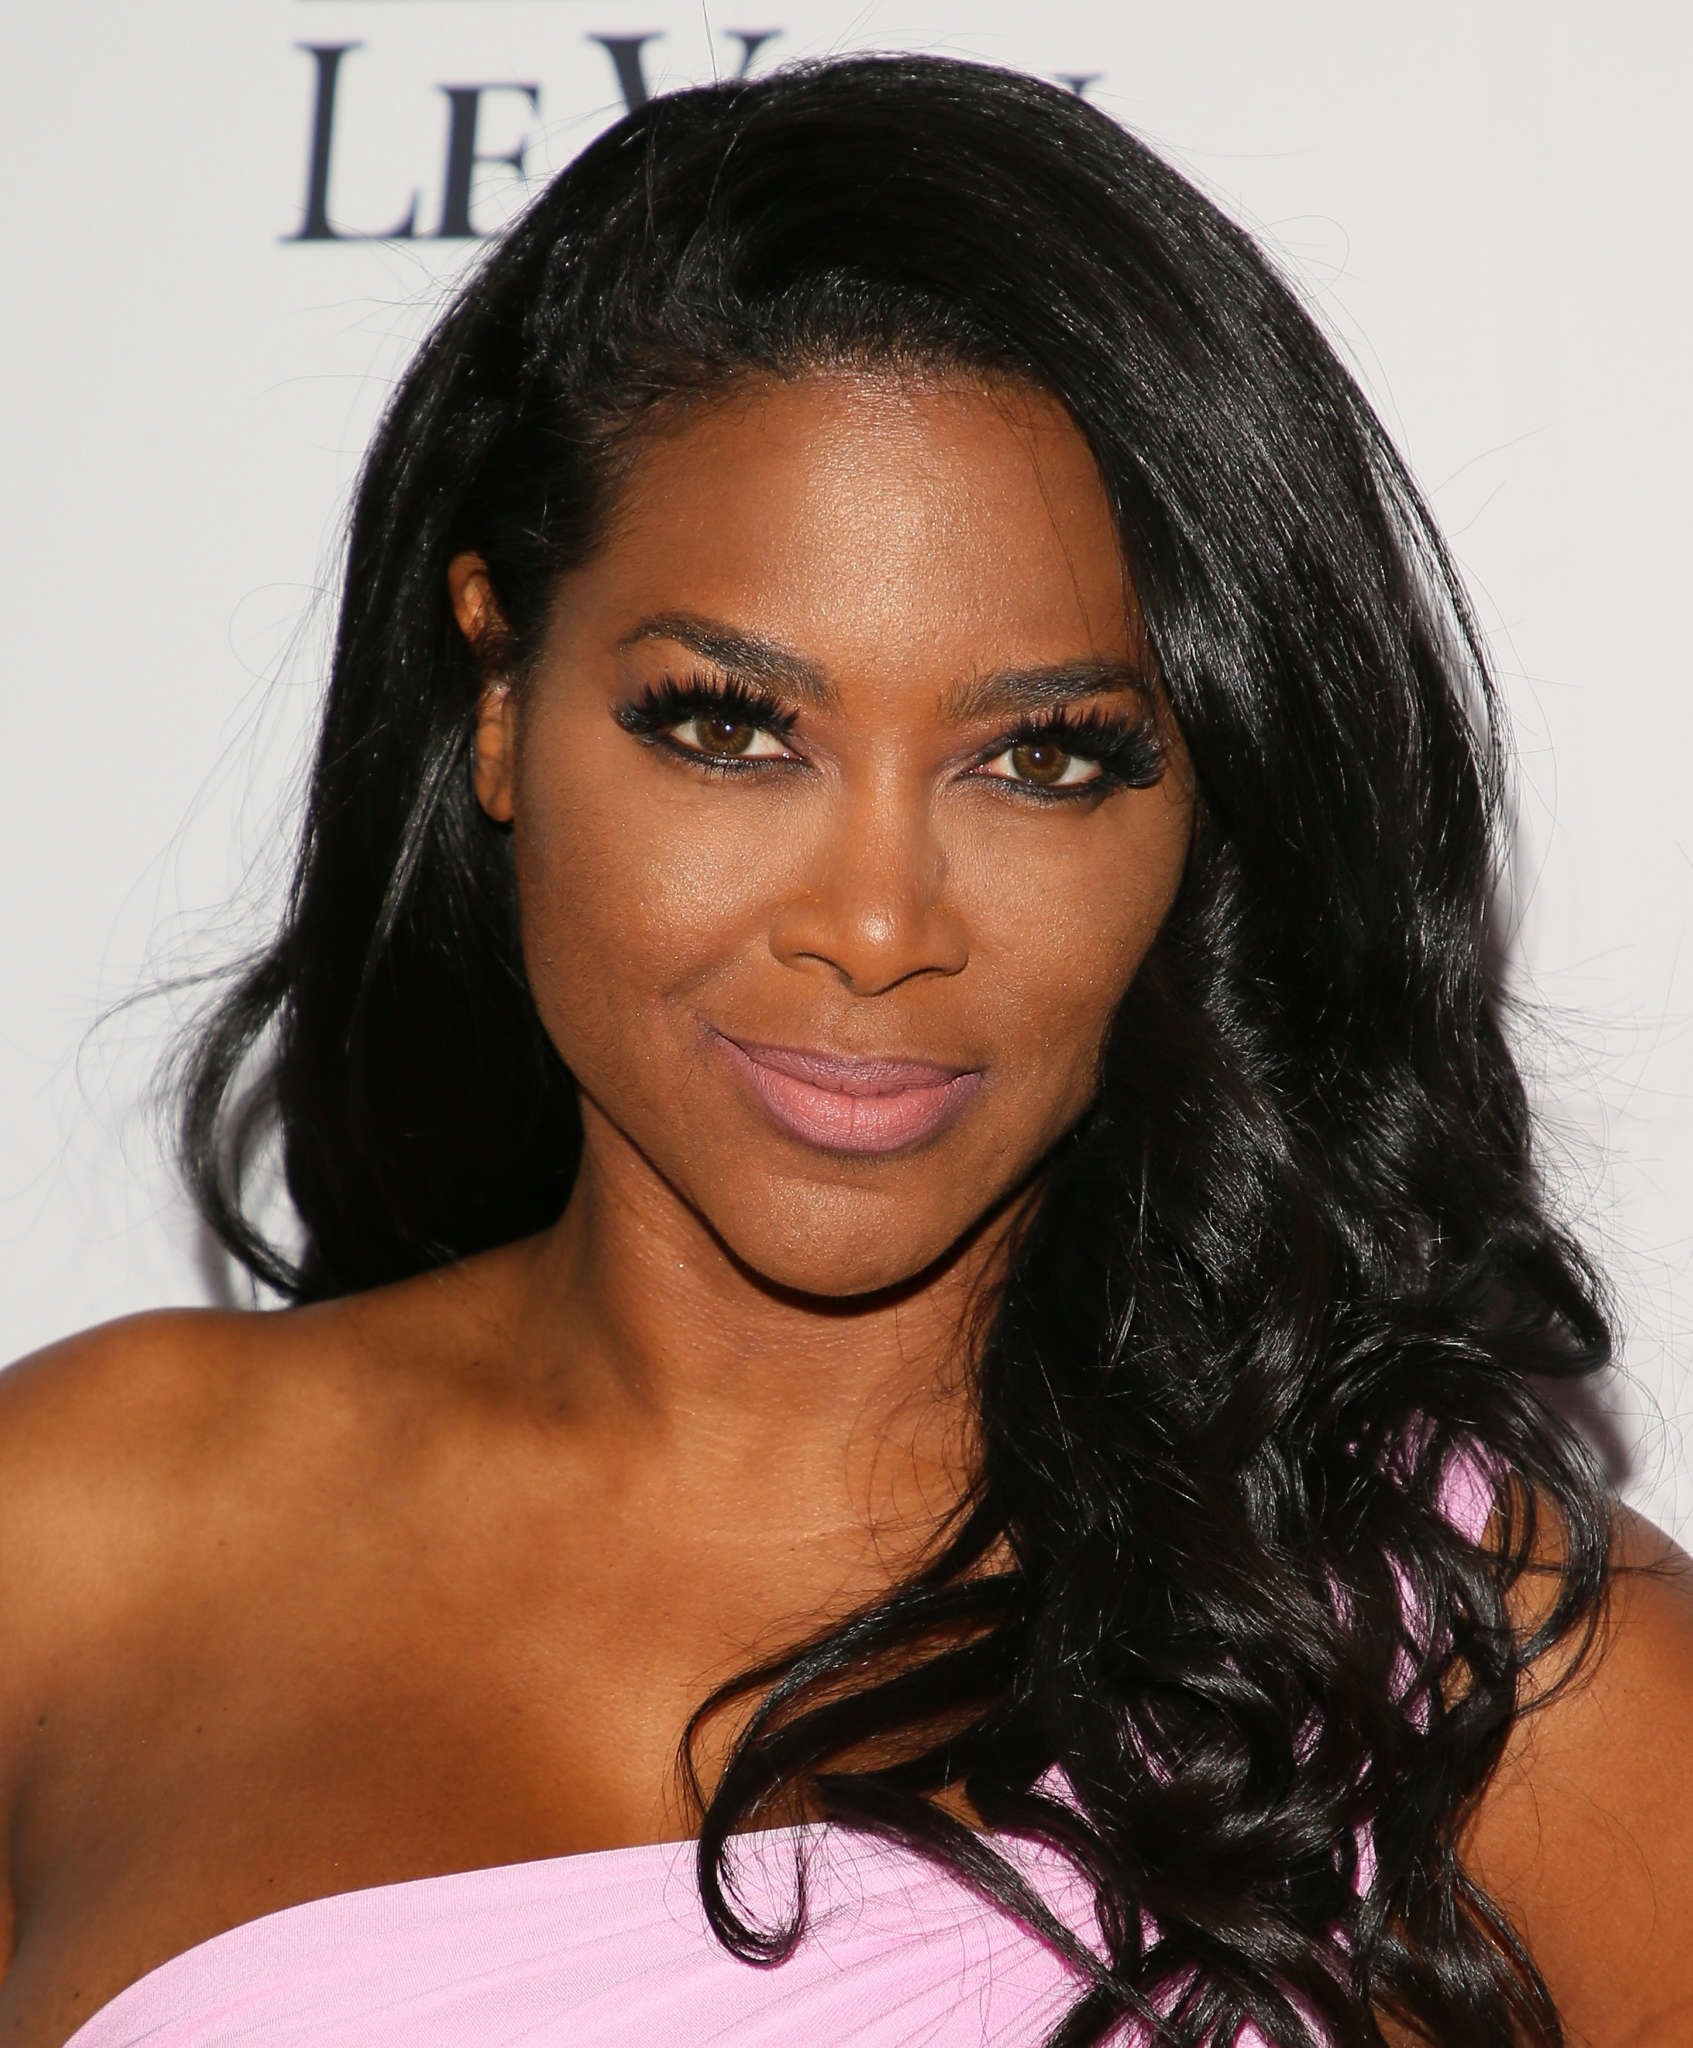 kenya-moore-is-rocking-fenty-beauty-lip-color-and-fans-are-in-love-with-her-look